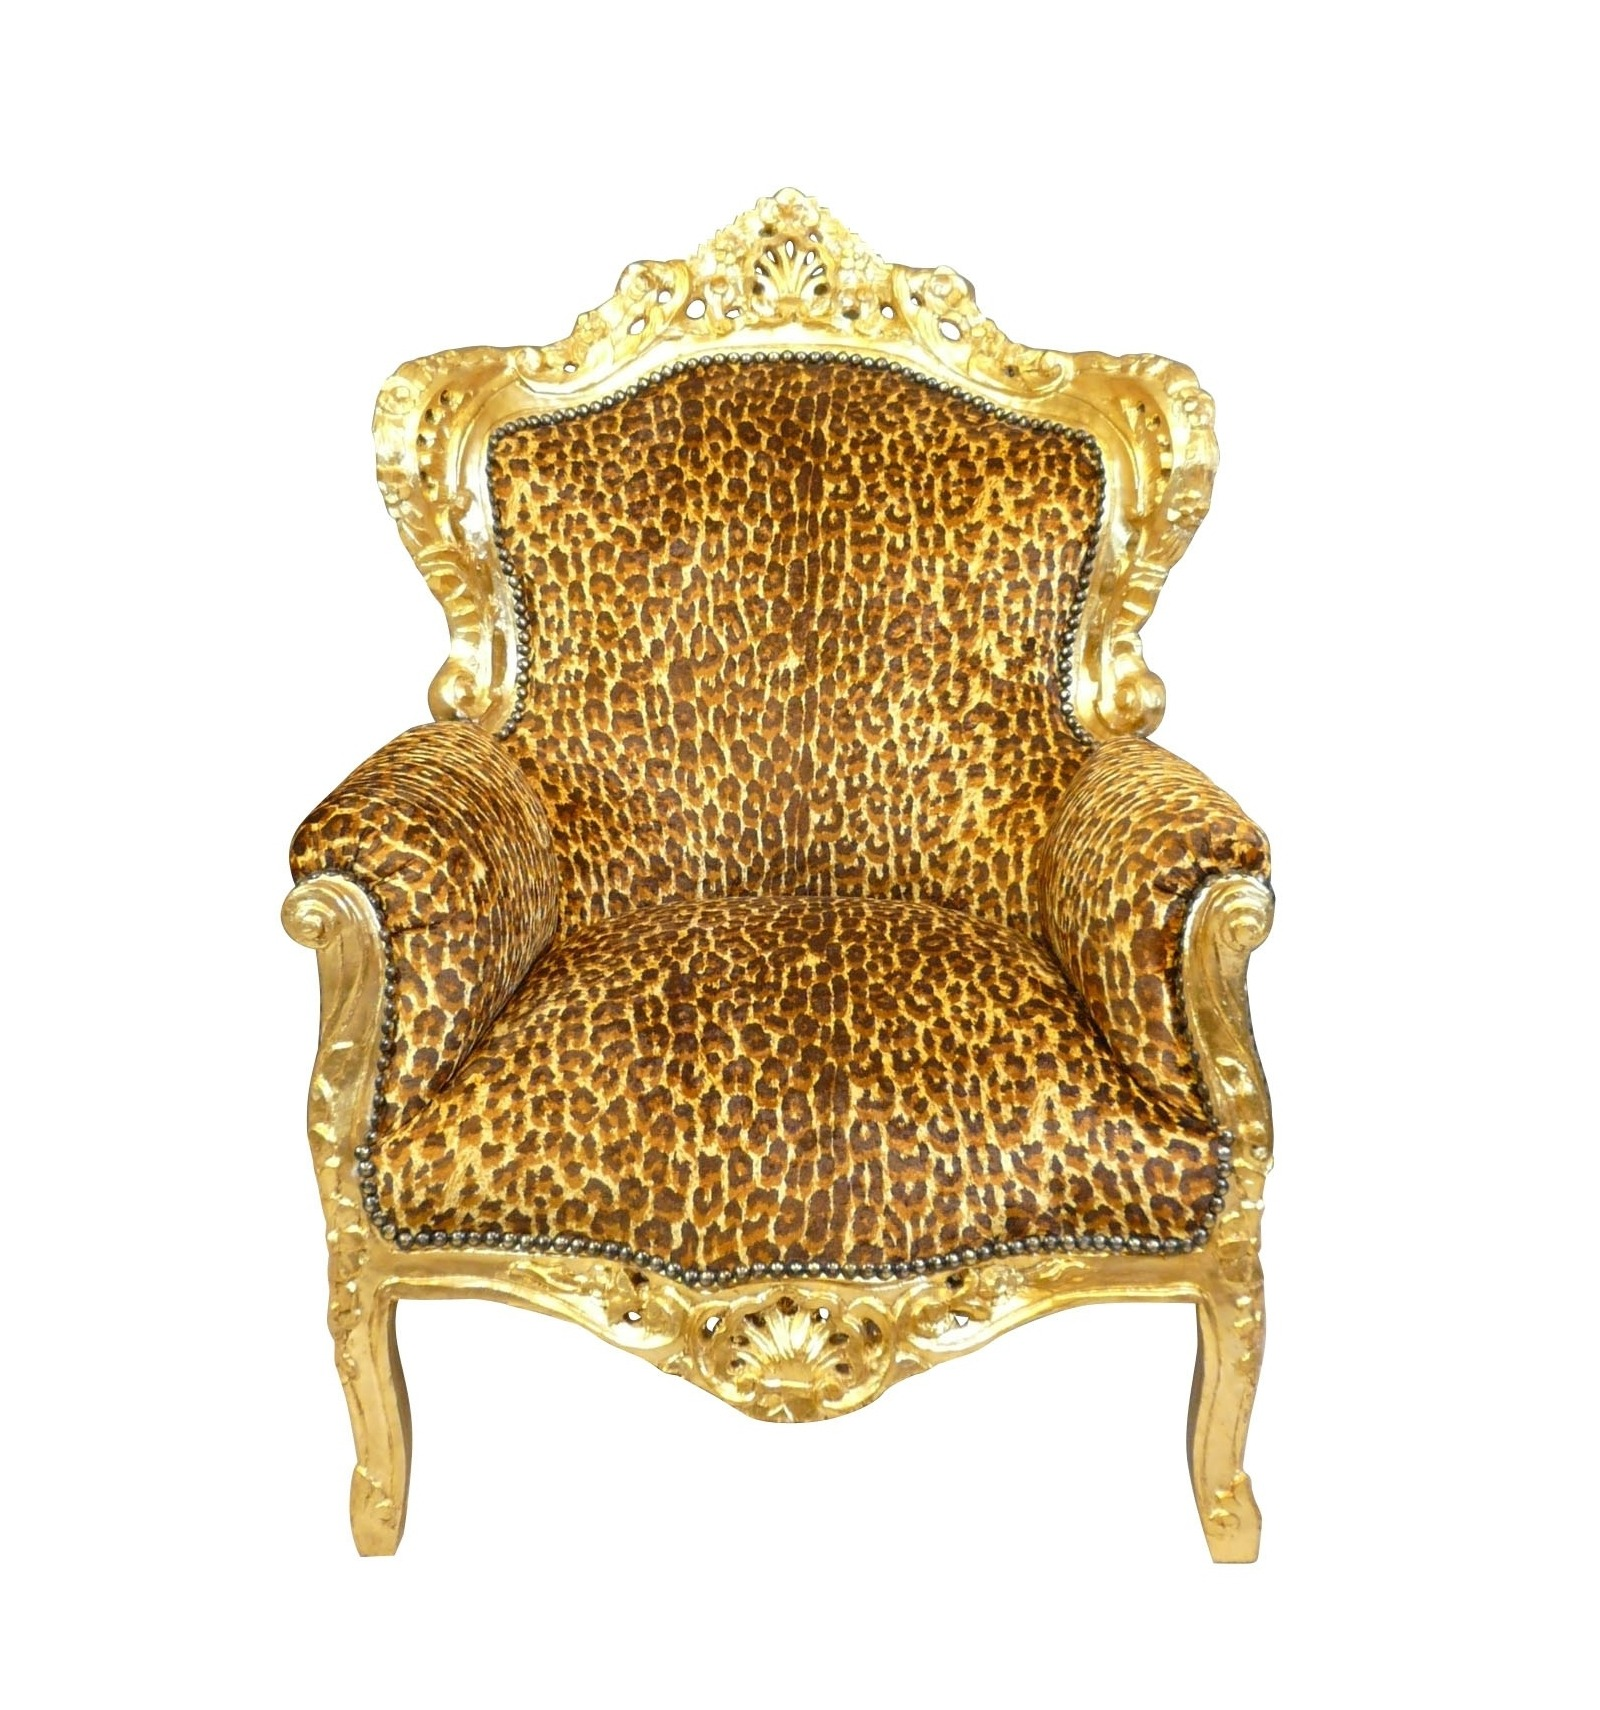 Baroque Leopard Armchair Table Dresser Chair And Style Furniture